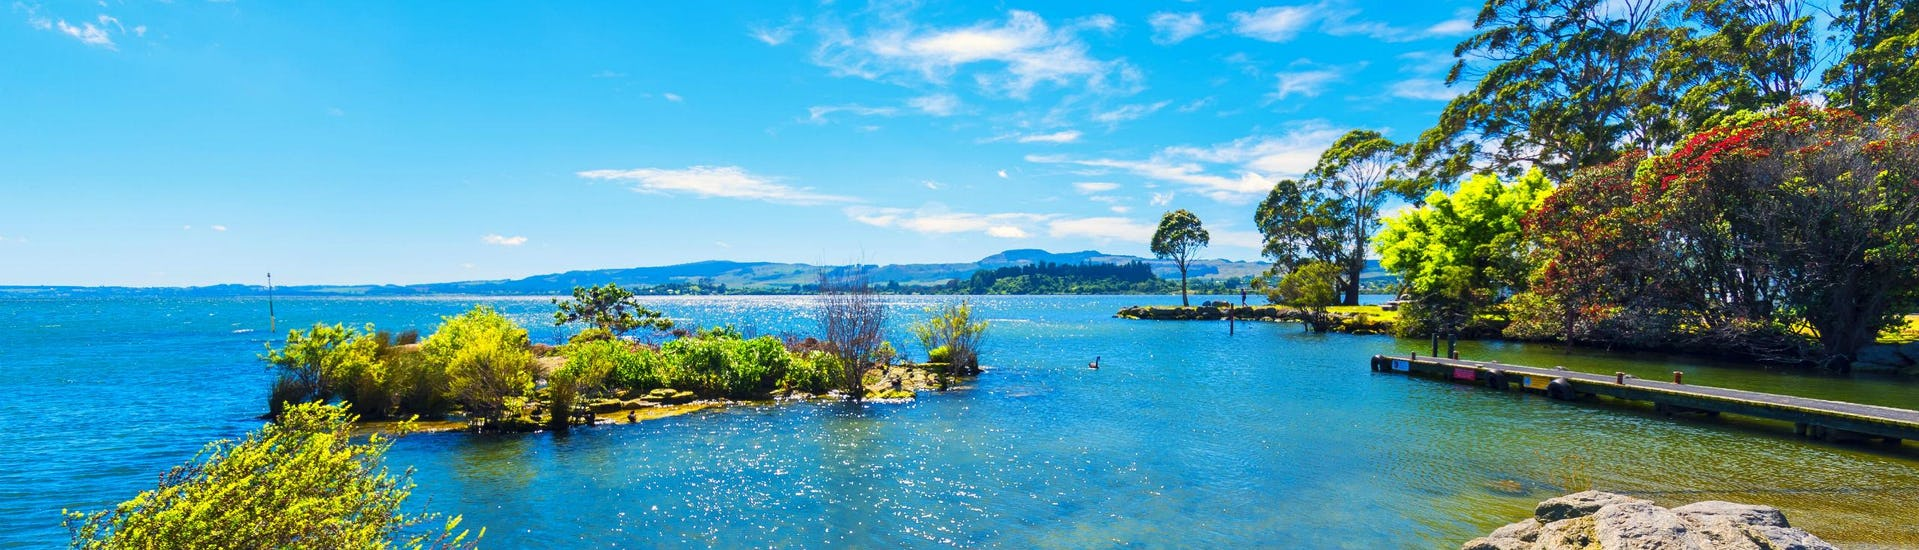 An image of one of the Rotorua Lakes near Okere Falls, a popular place to go Stand Up Paddleboarding.